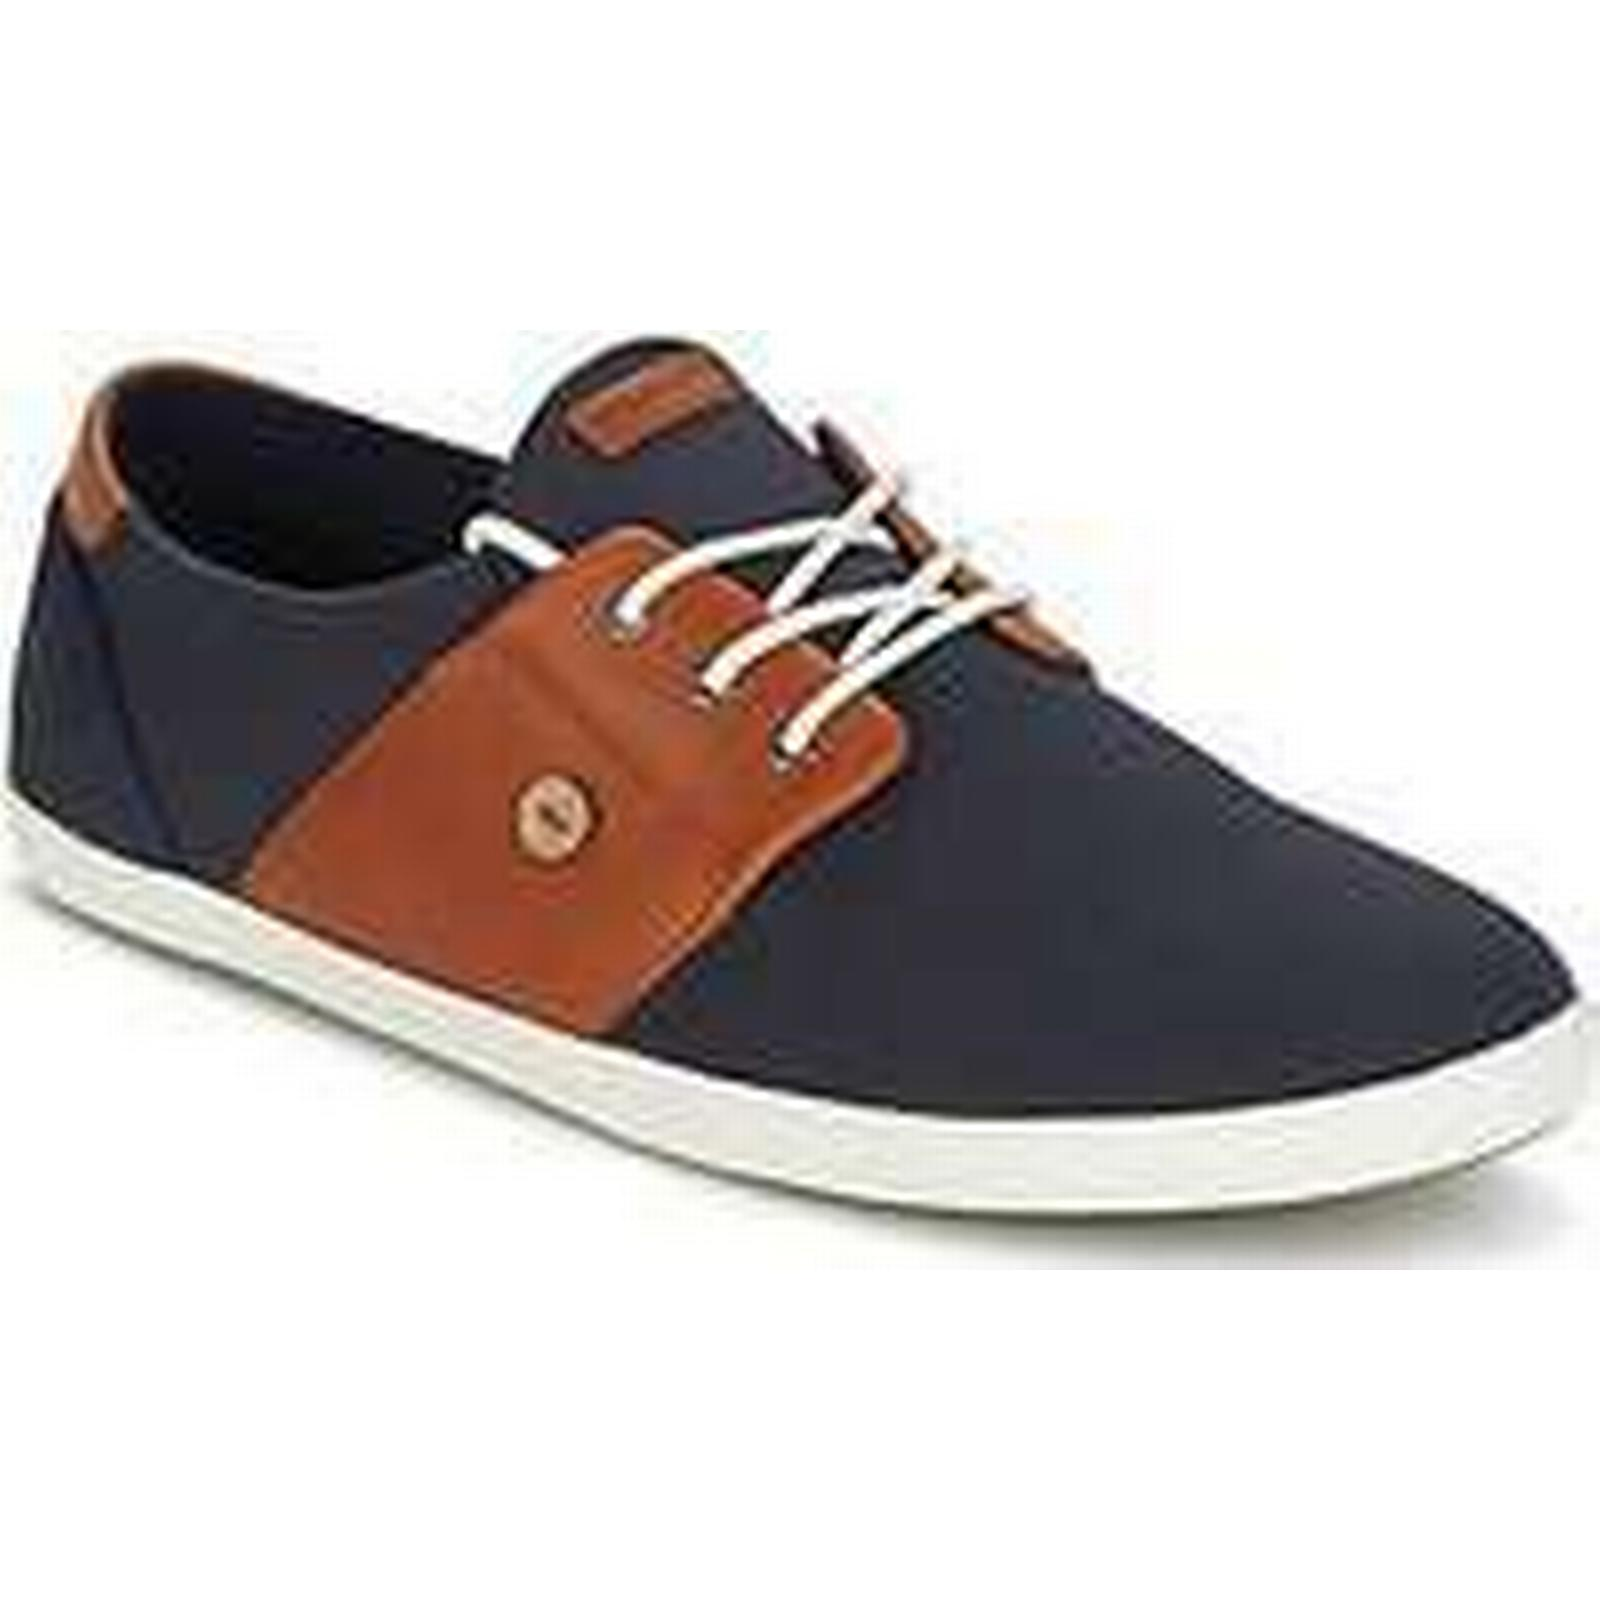 Spartoo.co.uk Faguo CYPRESS men's Shoes Blue (Trainers) in Blue Shoes 9843a0